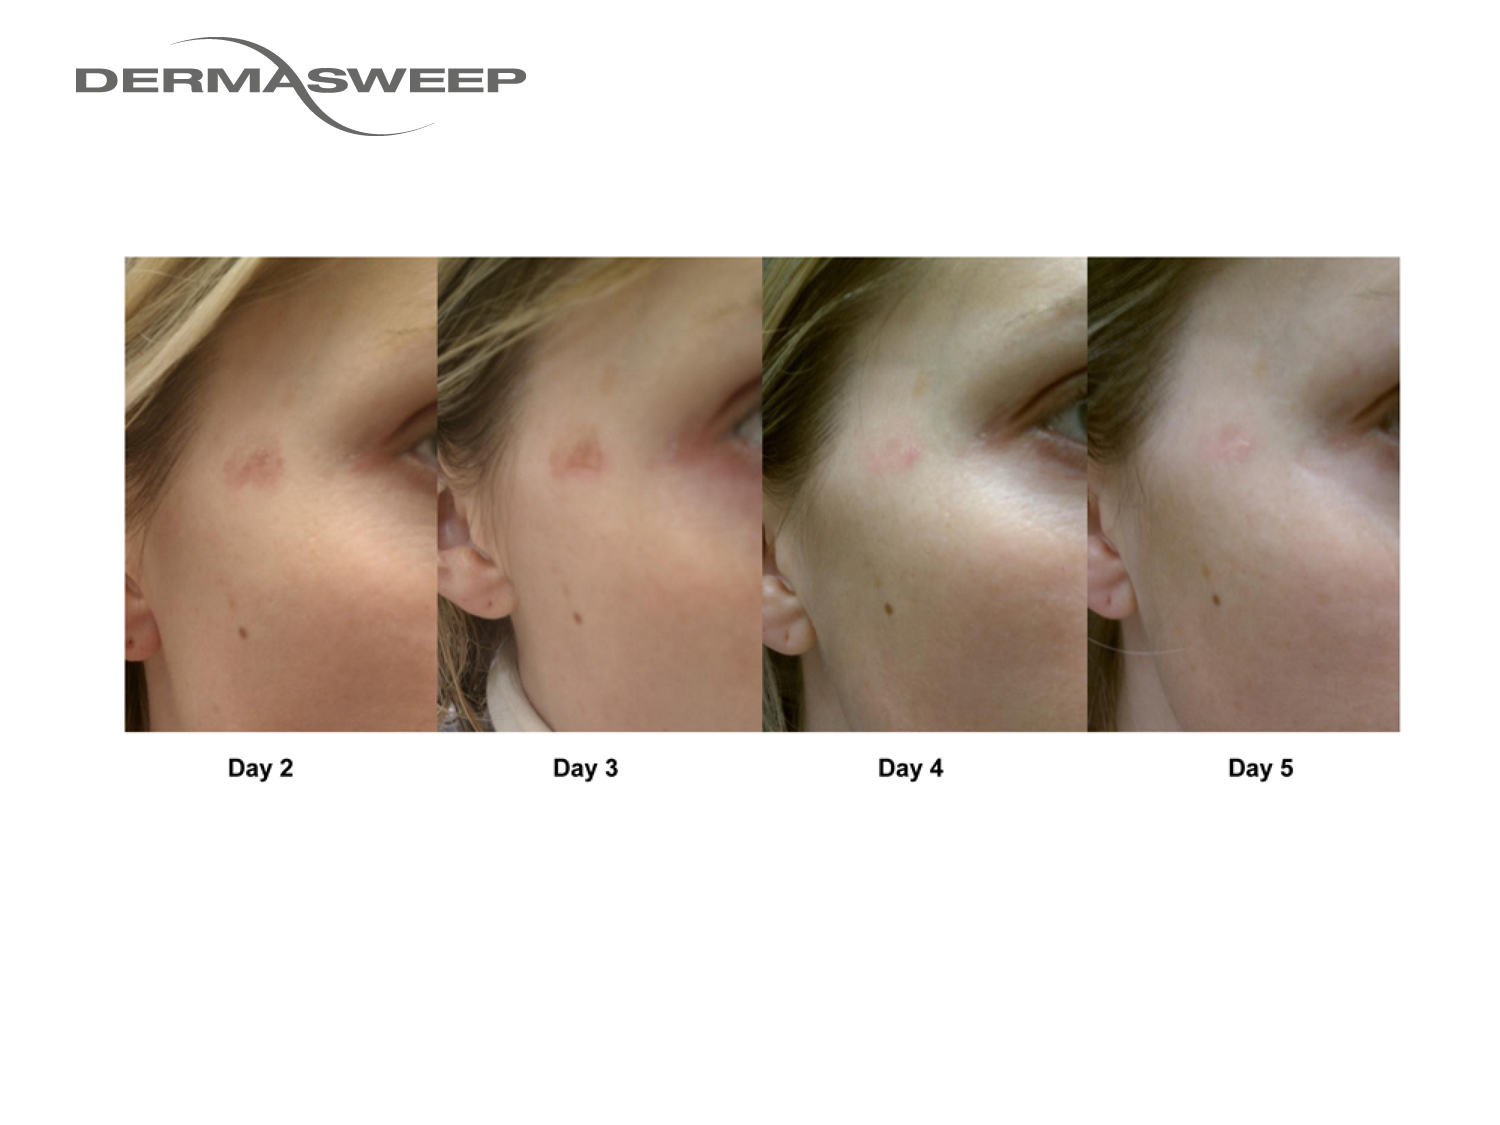 DermaSweep_Before_and_After_Pigment_PeelFusions.jpg